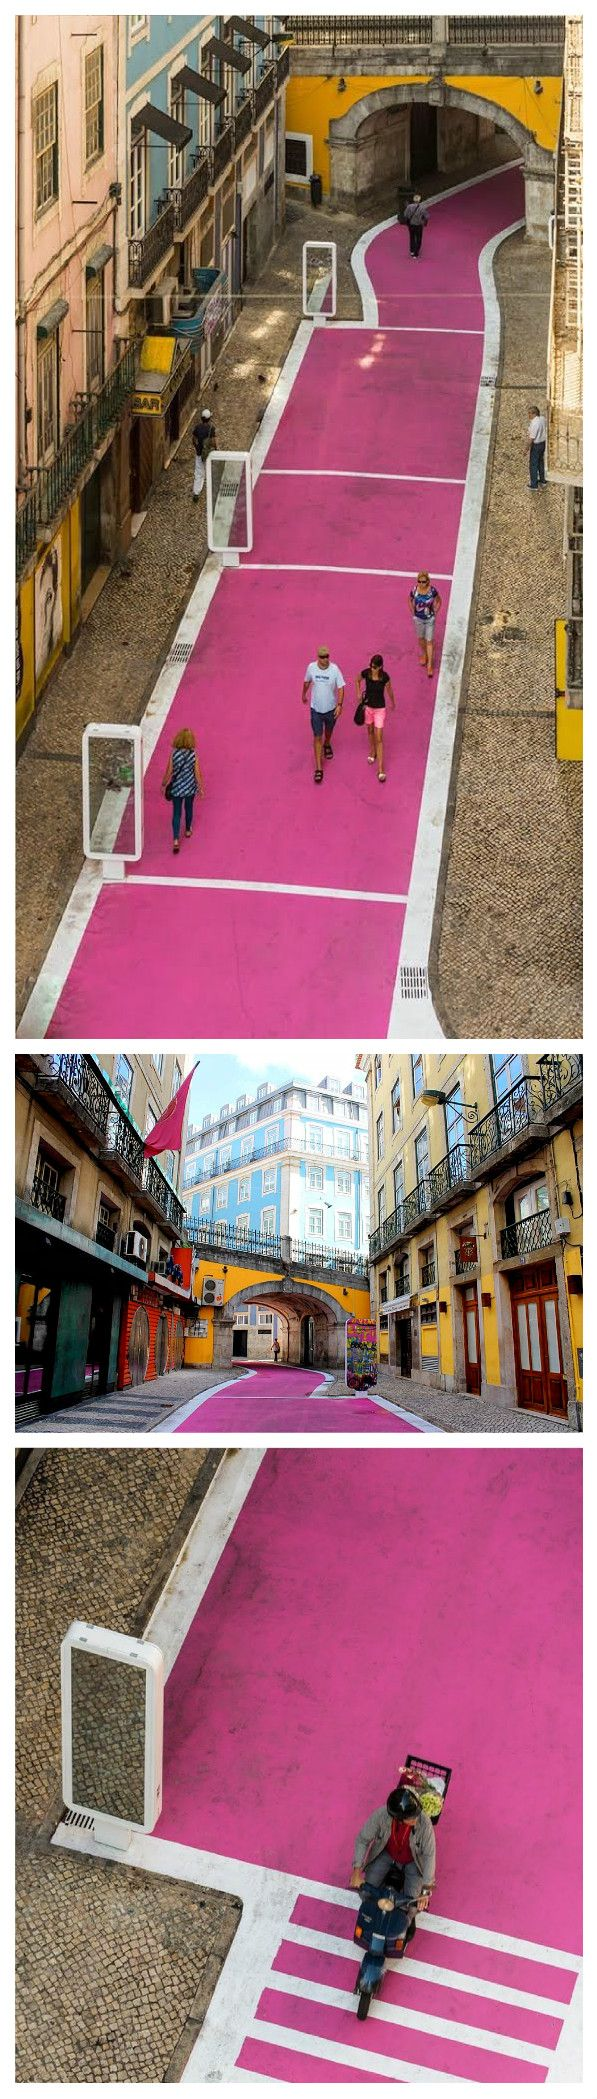 Rua Nova do Carvalho in Lisbon is better known as the Pink Street.  Painted pink as part of an urban regeneration project by architect, José Adrião, it is the perfect centerpiece to a burgeoning, creative part of town! Around the world in 80 places & spaces: https://www.jovoto.com/blog/creatives/interior-design-and-architecture-around-the-world/?utm_source=pinterest.com&utm_campaign=cm16pincontent&utm_medium=social&utm_content=80days